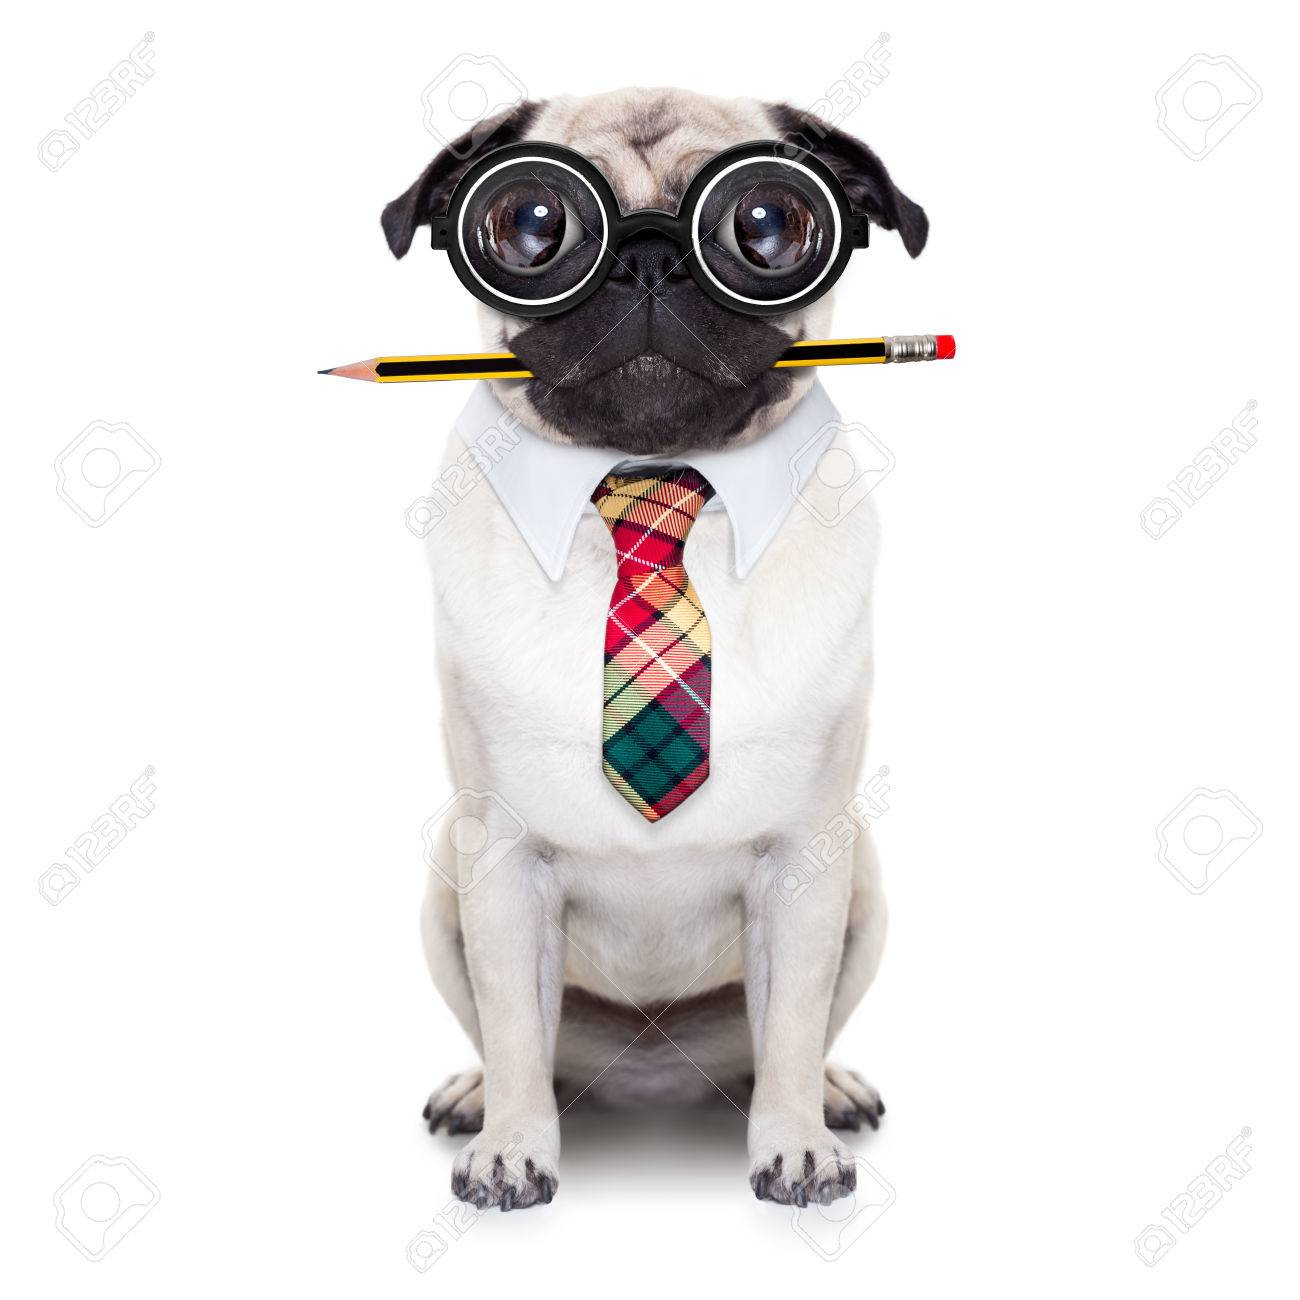 dumb crazy pug dog with nerd glasses as an office business worker with pencil in mouth ,full body ,  isolated on white background Stock Photo - 49563303